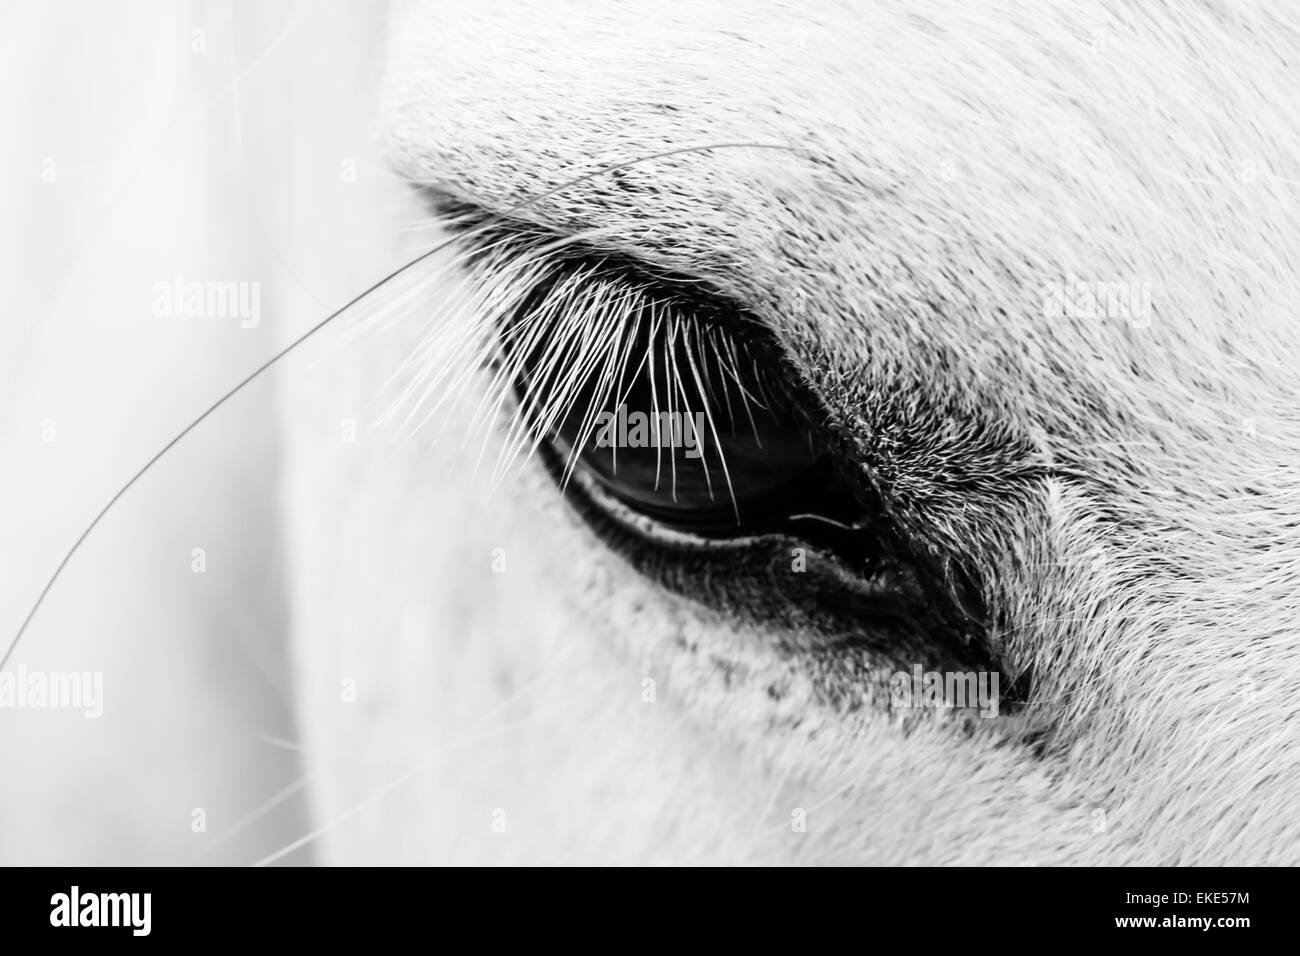 Detail of a white horse - Stock Image